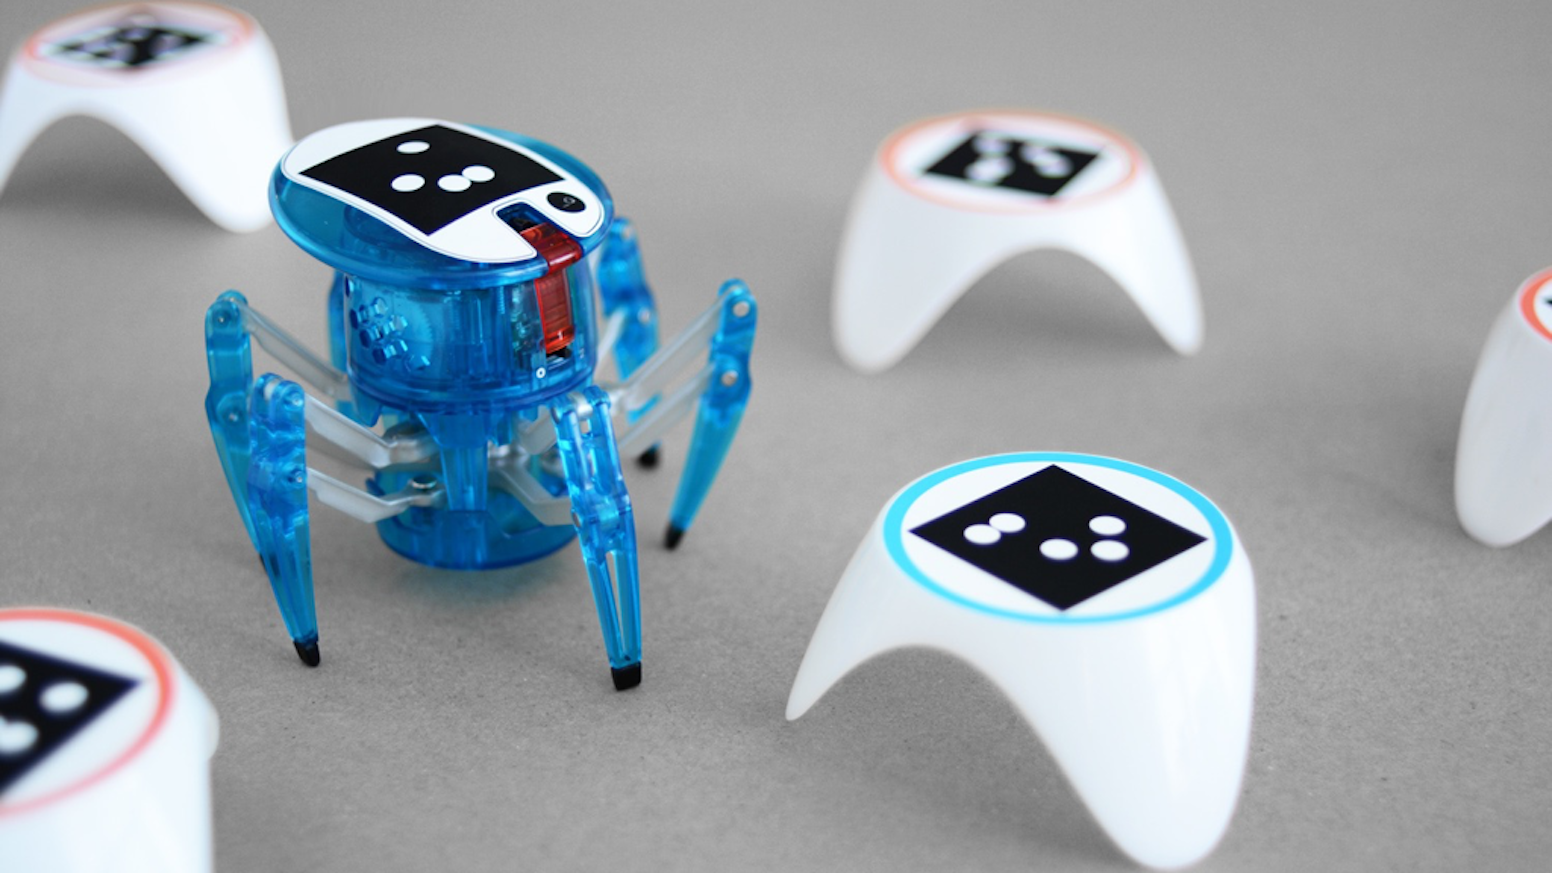 Playful immersion in advanced STEM. Teachable robots solve kid-built mazes with artificial intelligence. Supports 2 Hexbug Spiders.